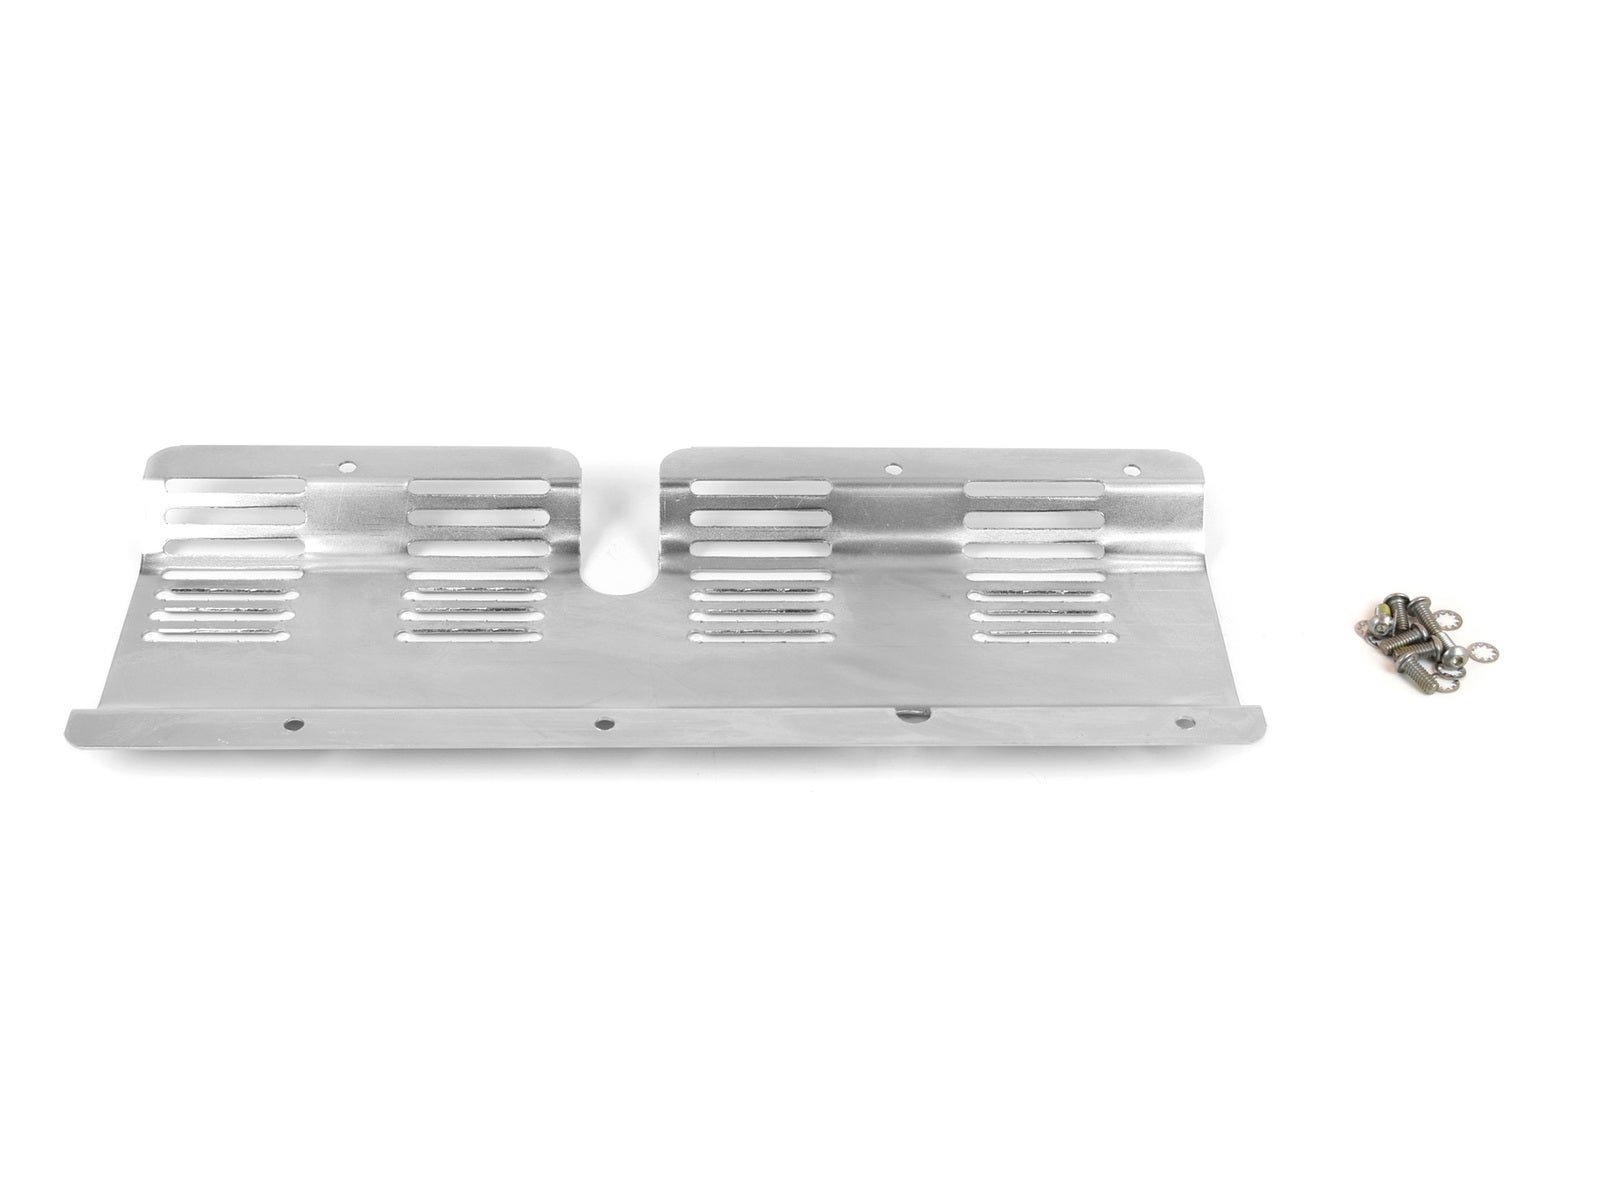 Canton Windage Tray For PN [21-060] Main Support Ford LTD Crown Victoria 1981 CN20960